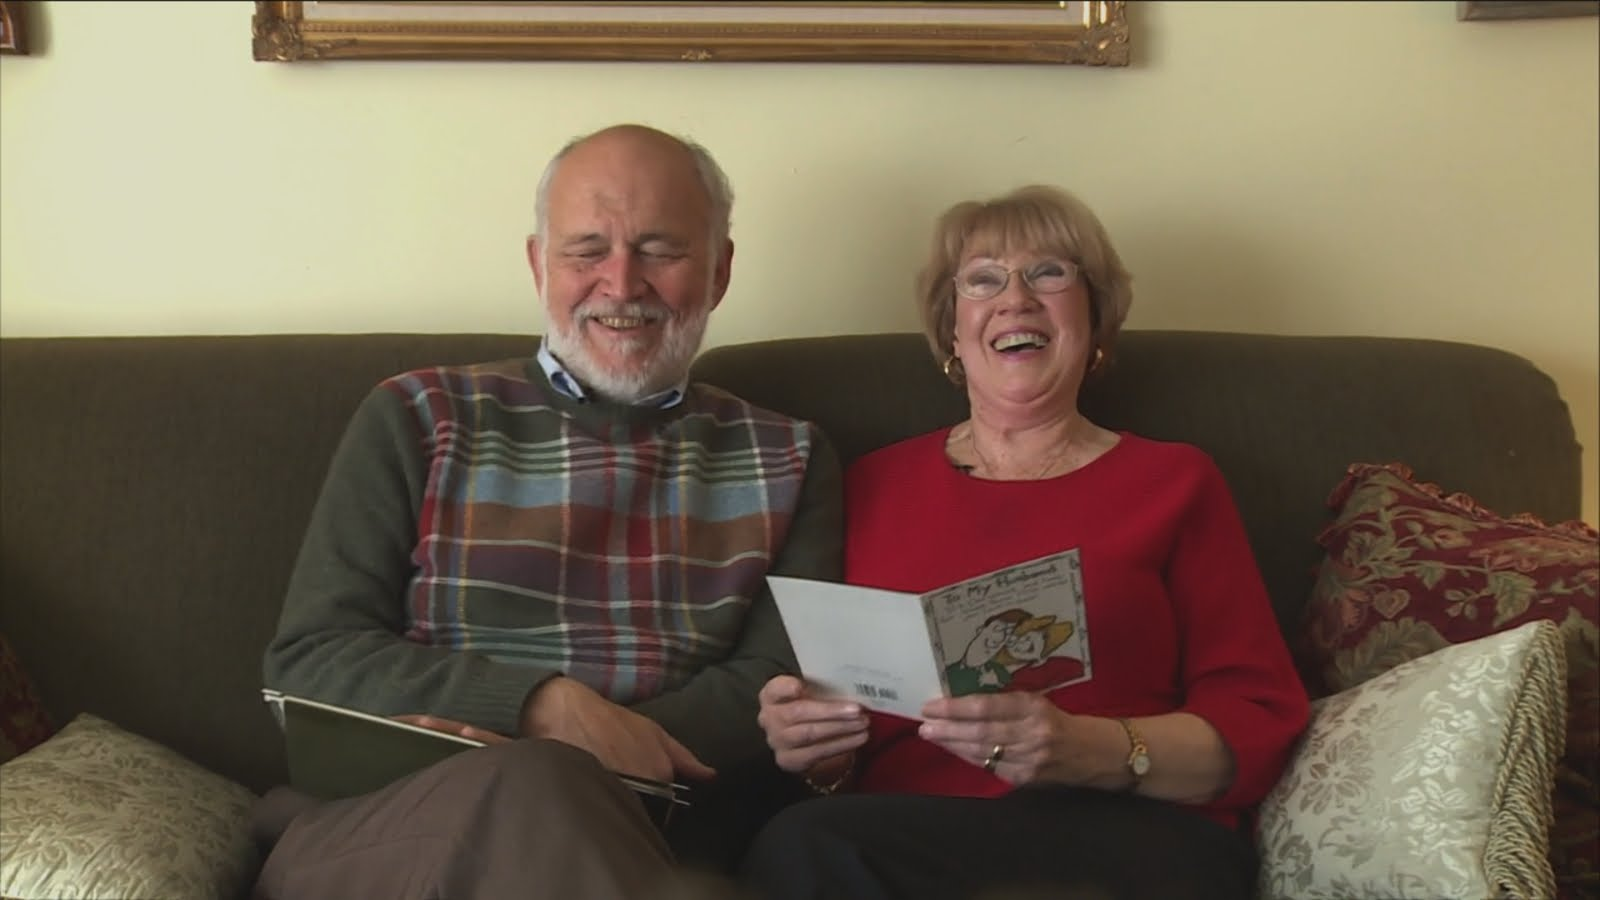 Husband Gives Over 10,000 Love Letters to Loving Wife